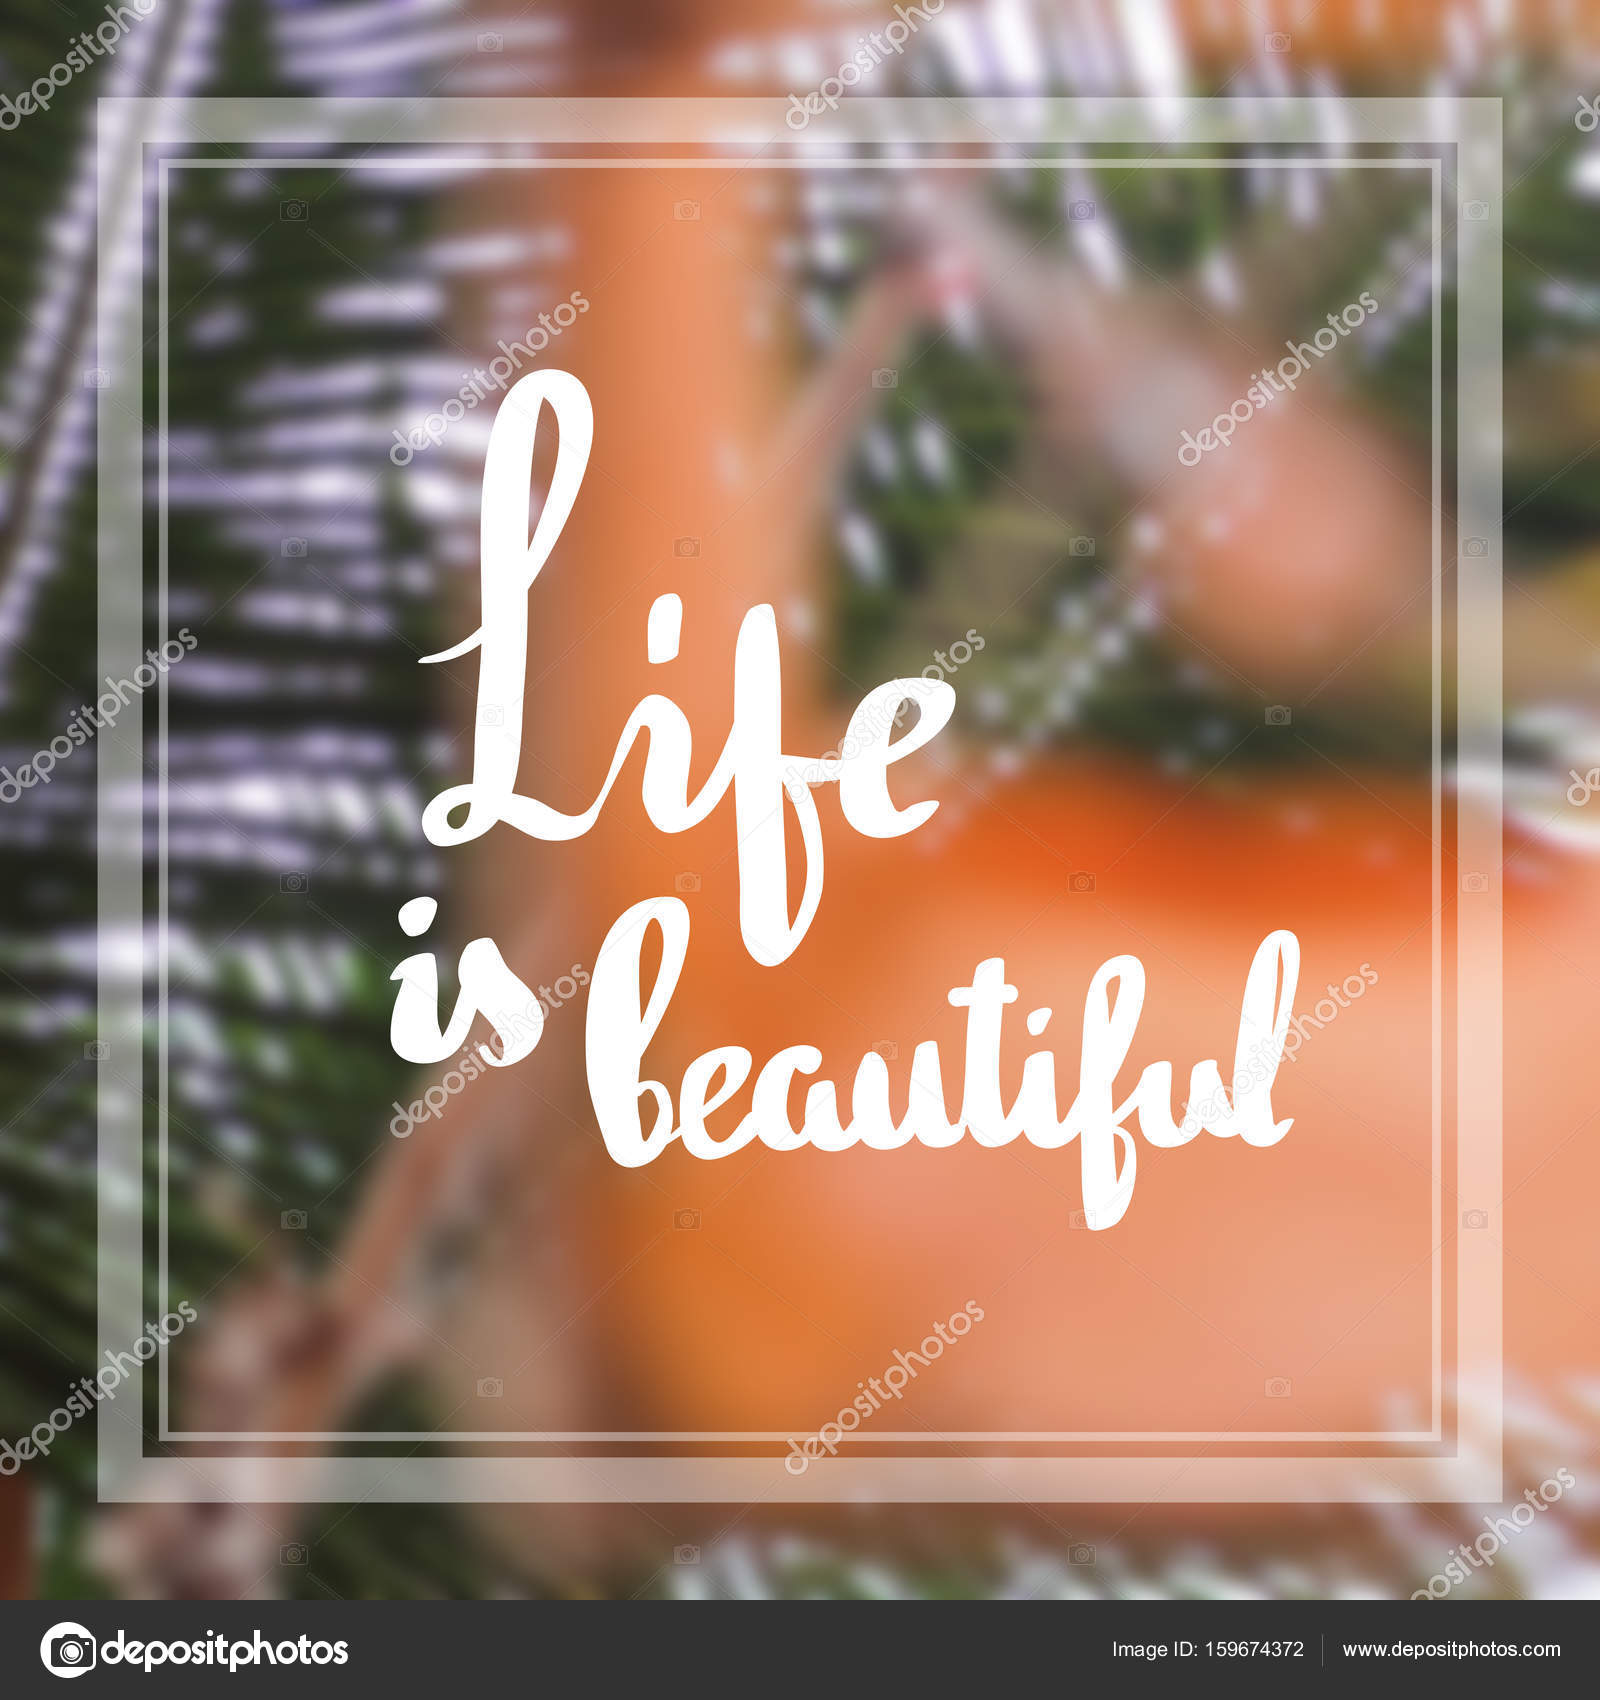 Images Beautiful With Quotes Life Is Beautiful Inspiration And Motivation Quotes Stock Photo C Ivanna Pliskova 159674372